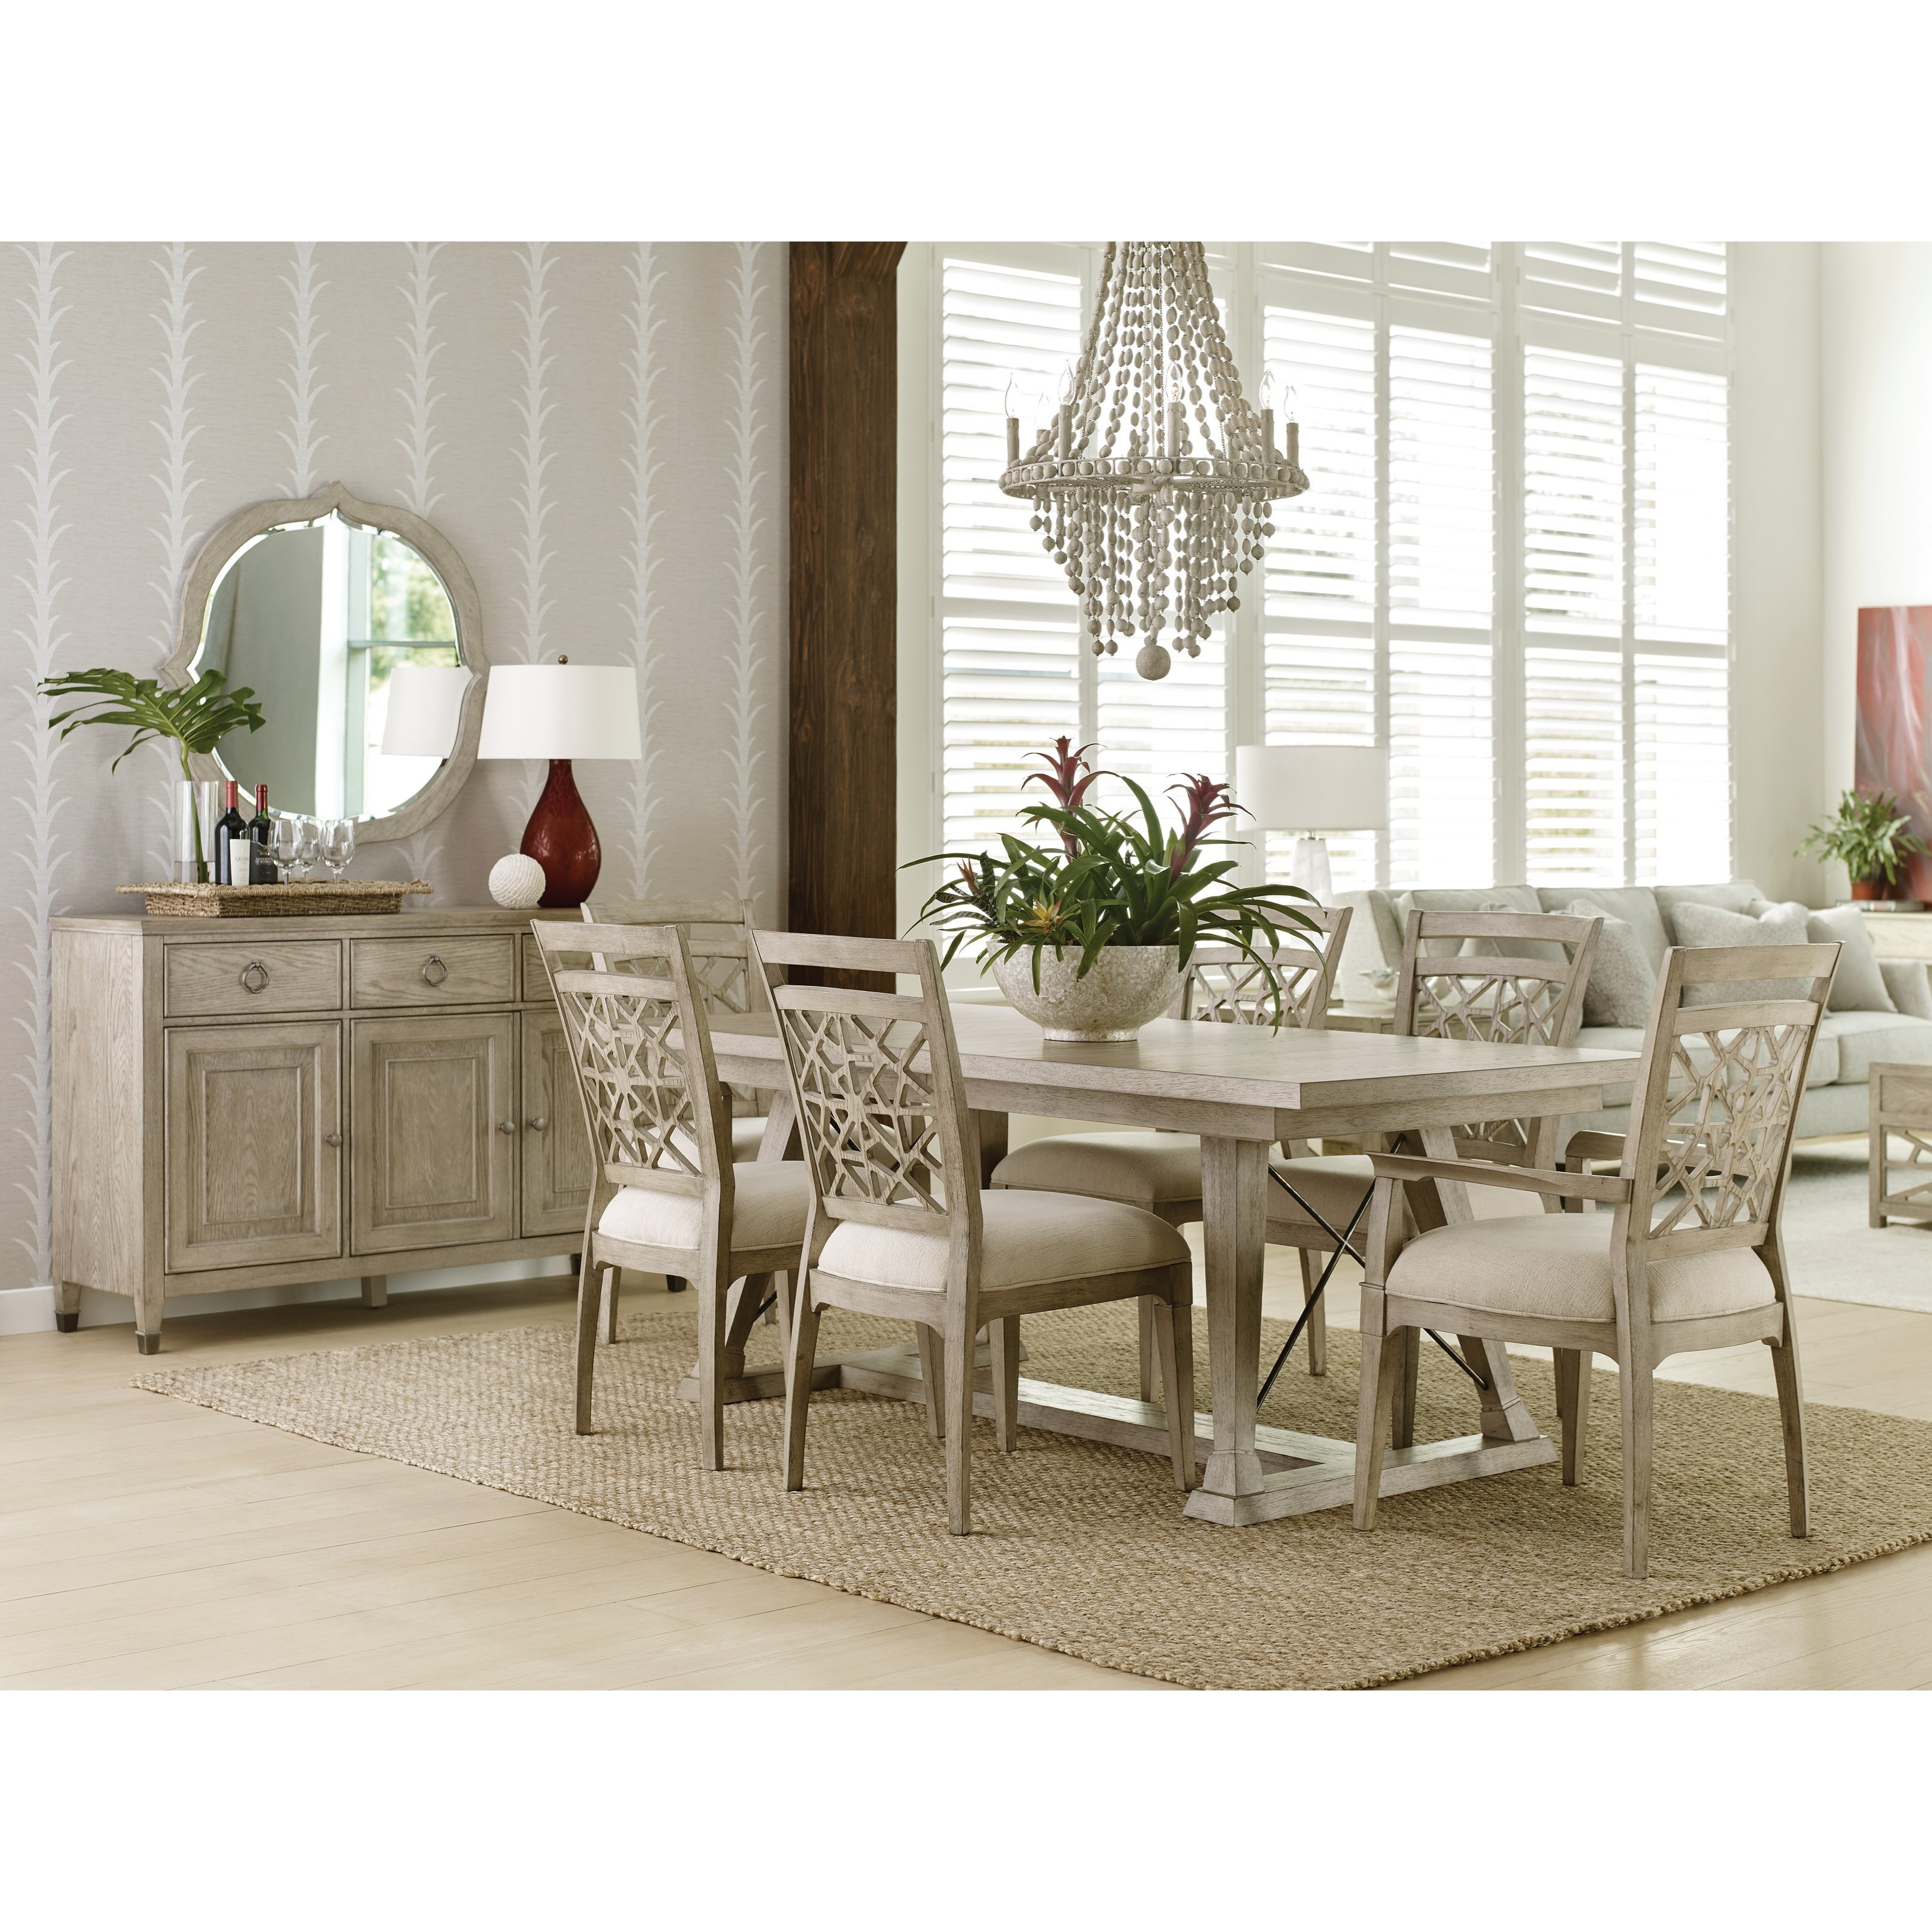 Vista Formal Dining Room Group by American Drew at Johnny Janosik